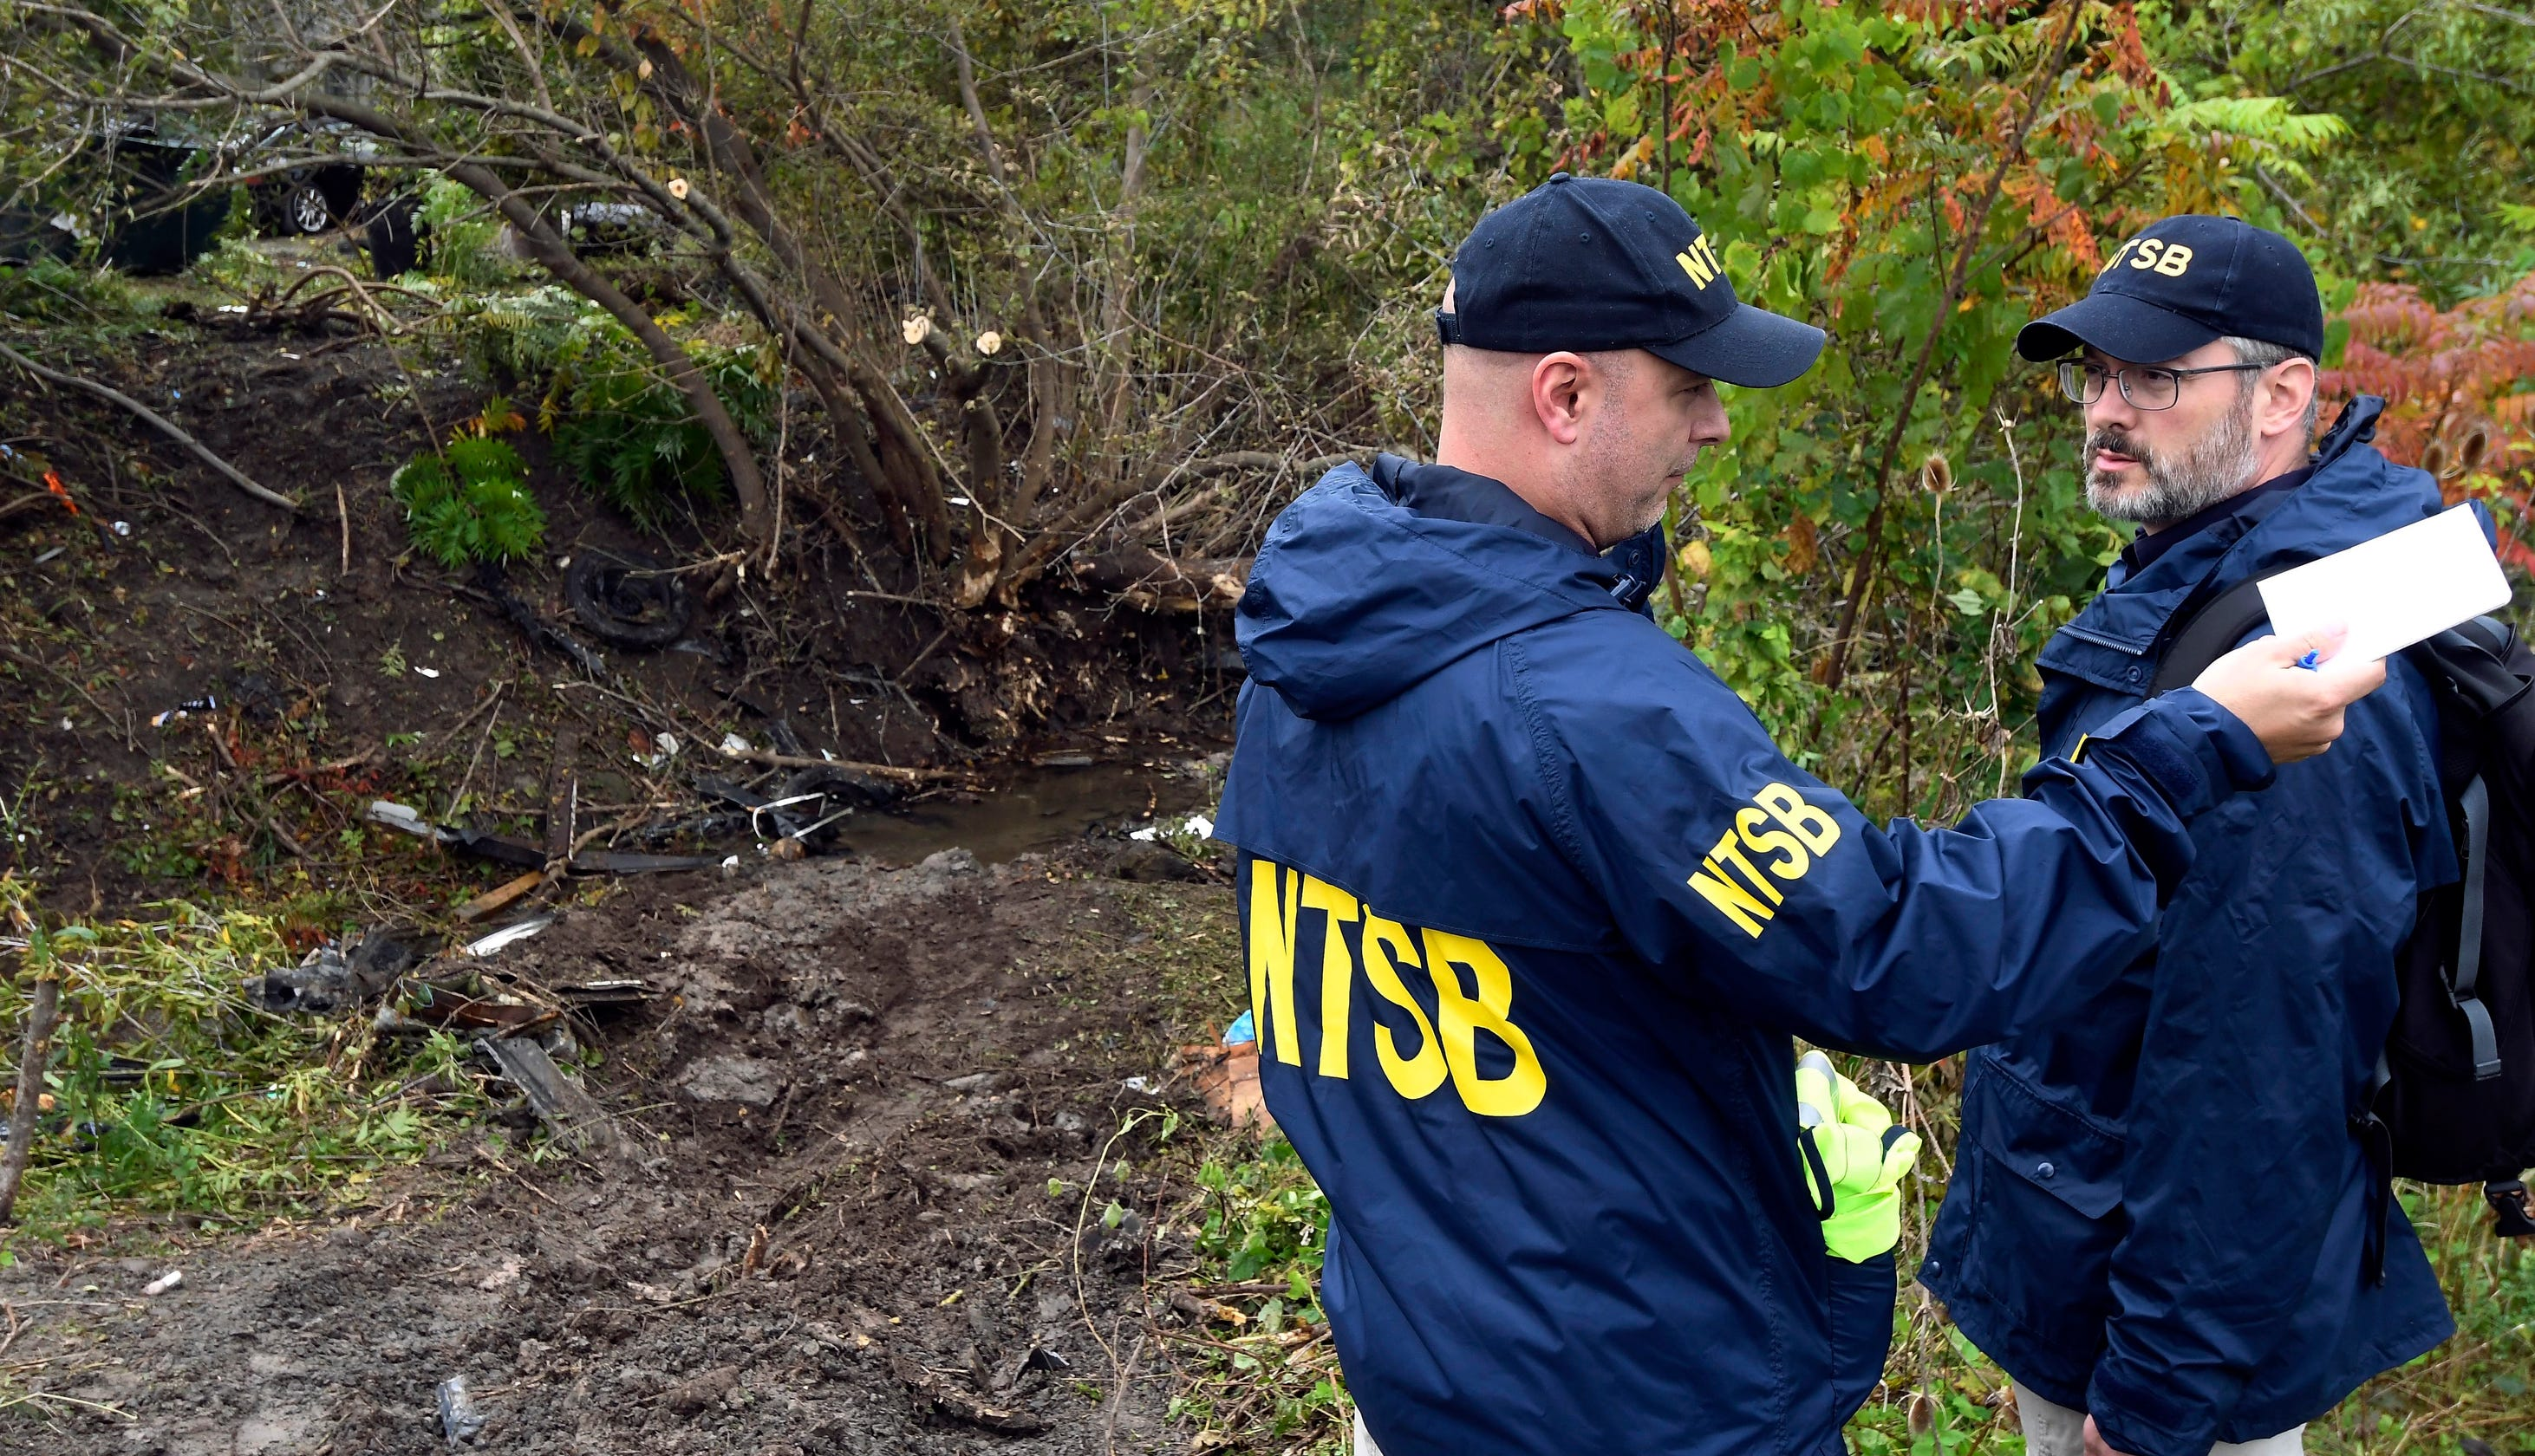 NY limo crash victims: Cause of death released by state police